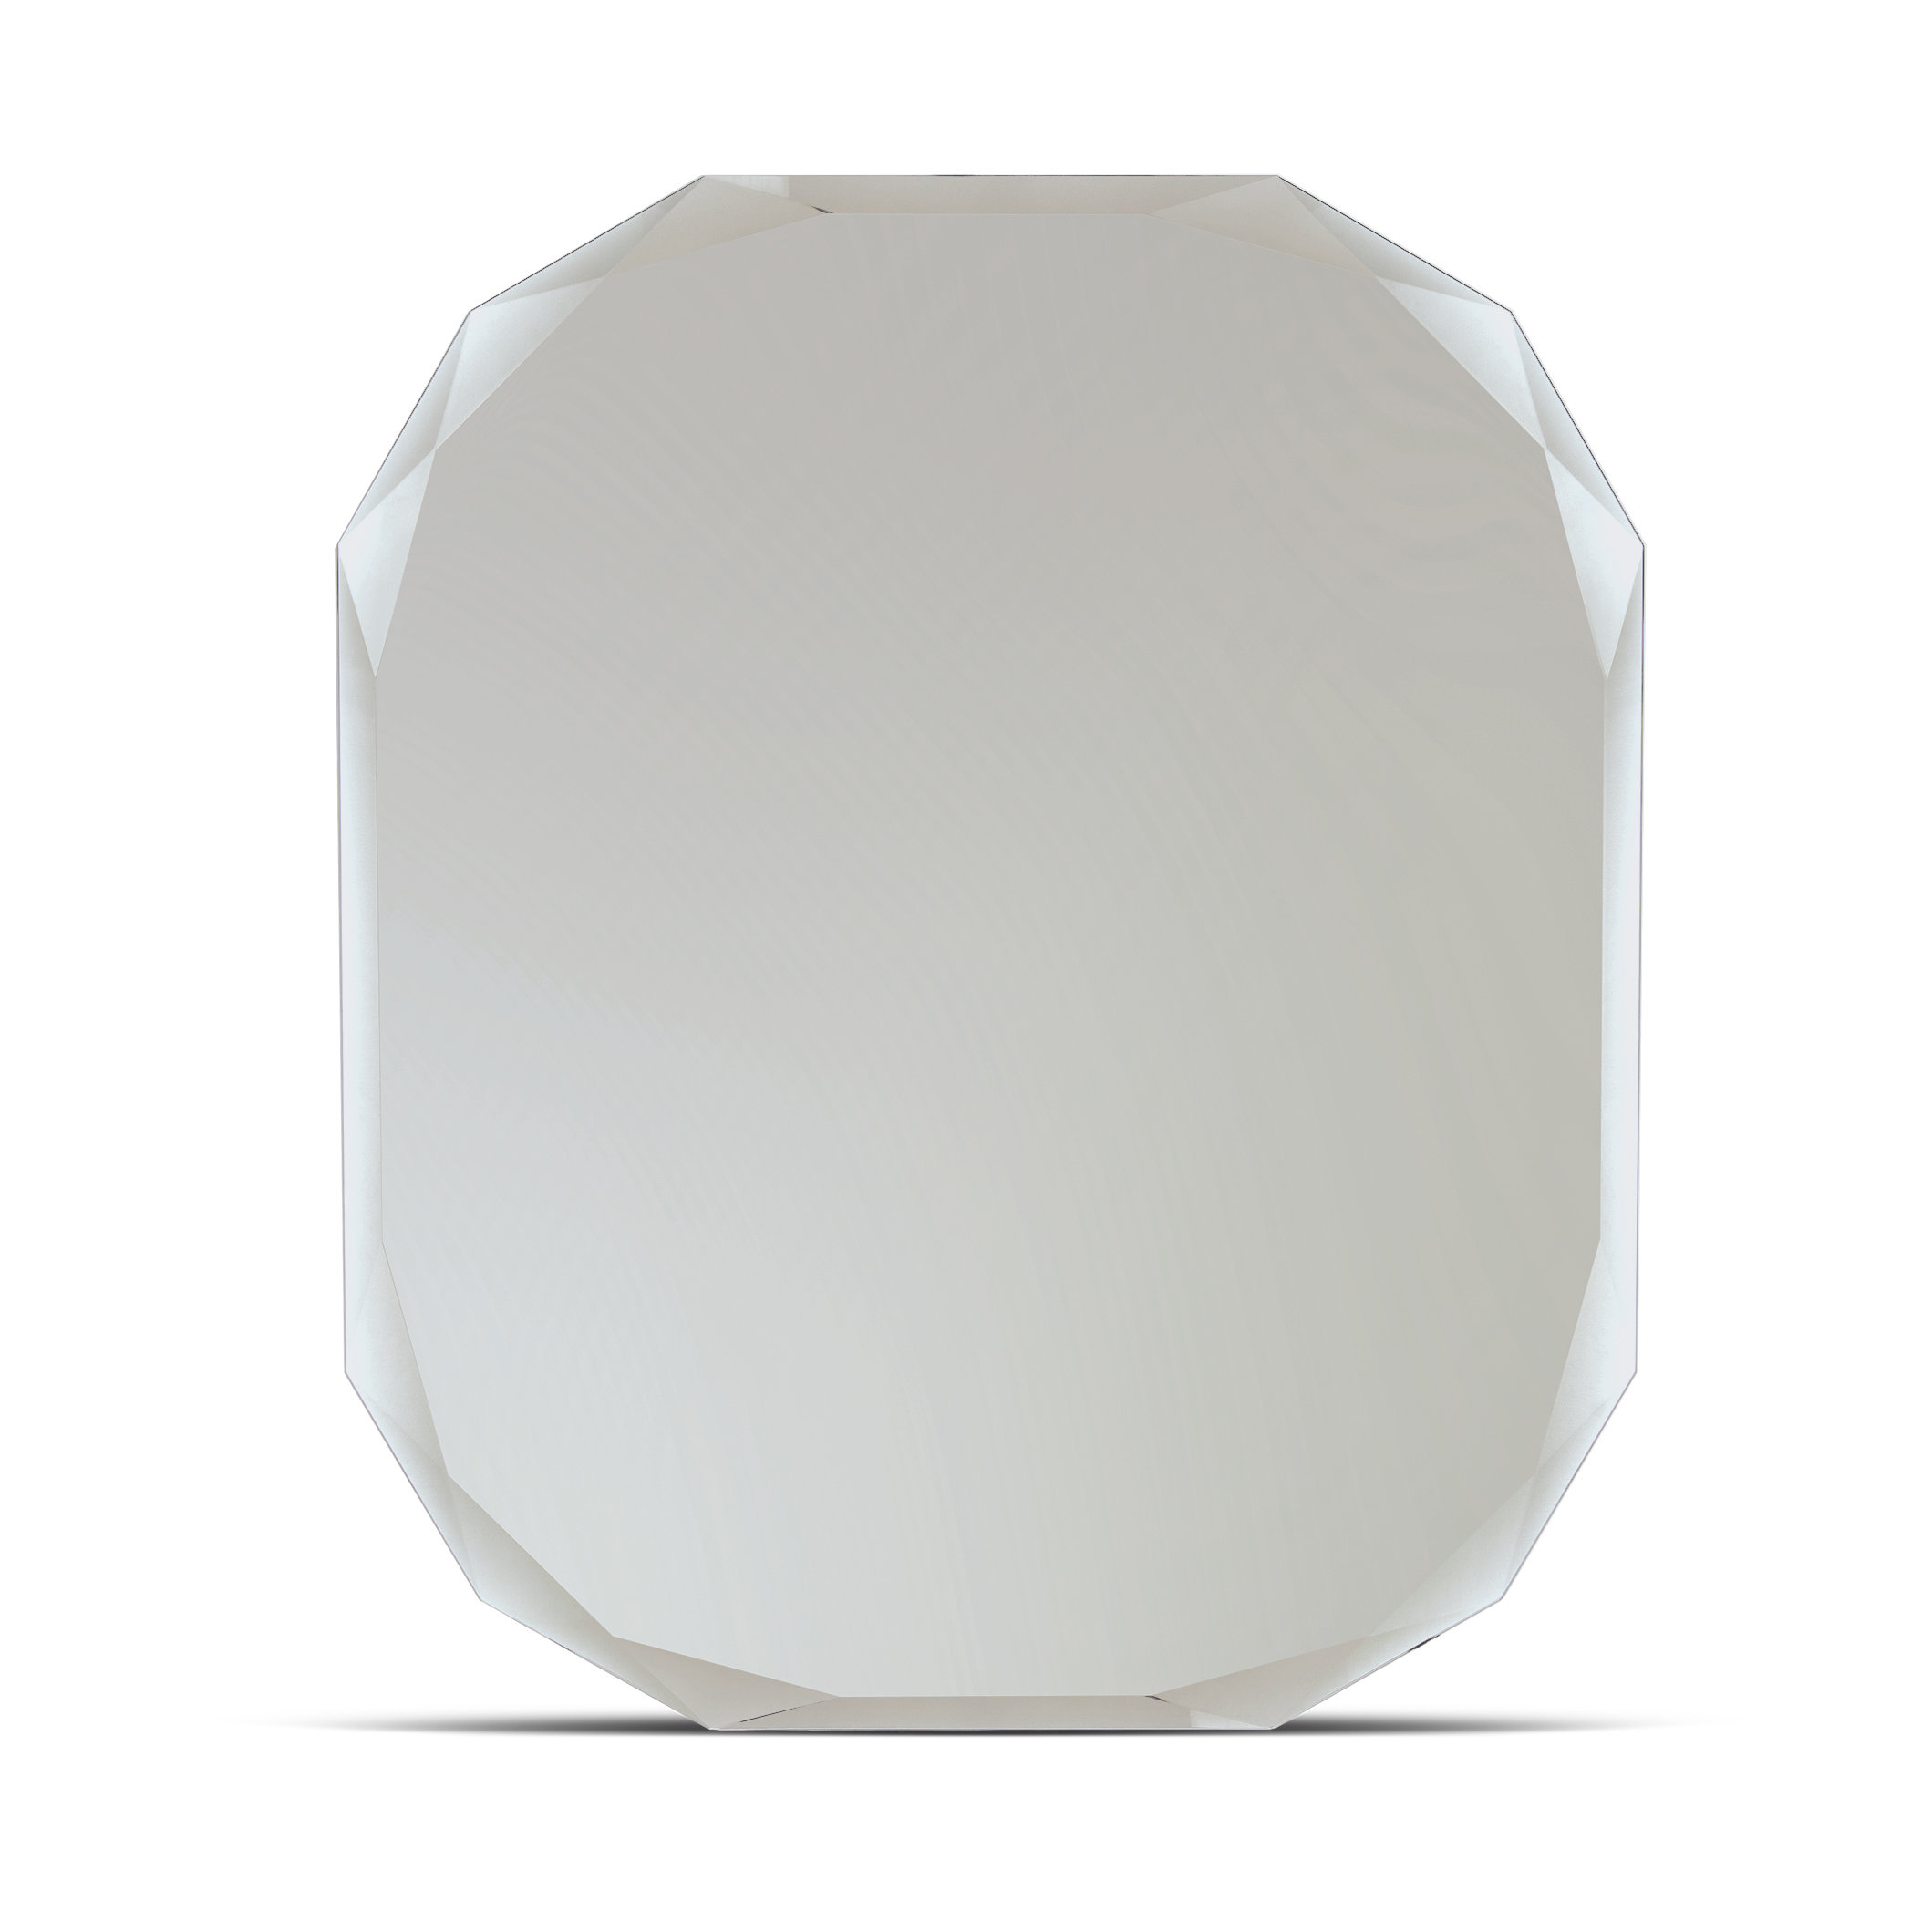 Accent Mirror Regarding Egor Accent Mirrors (Image 1 of 20)